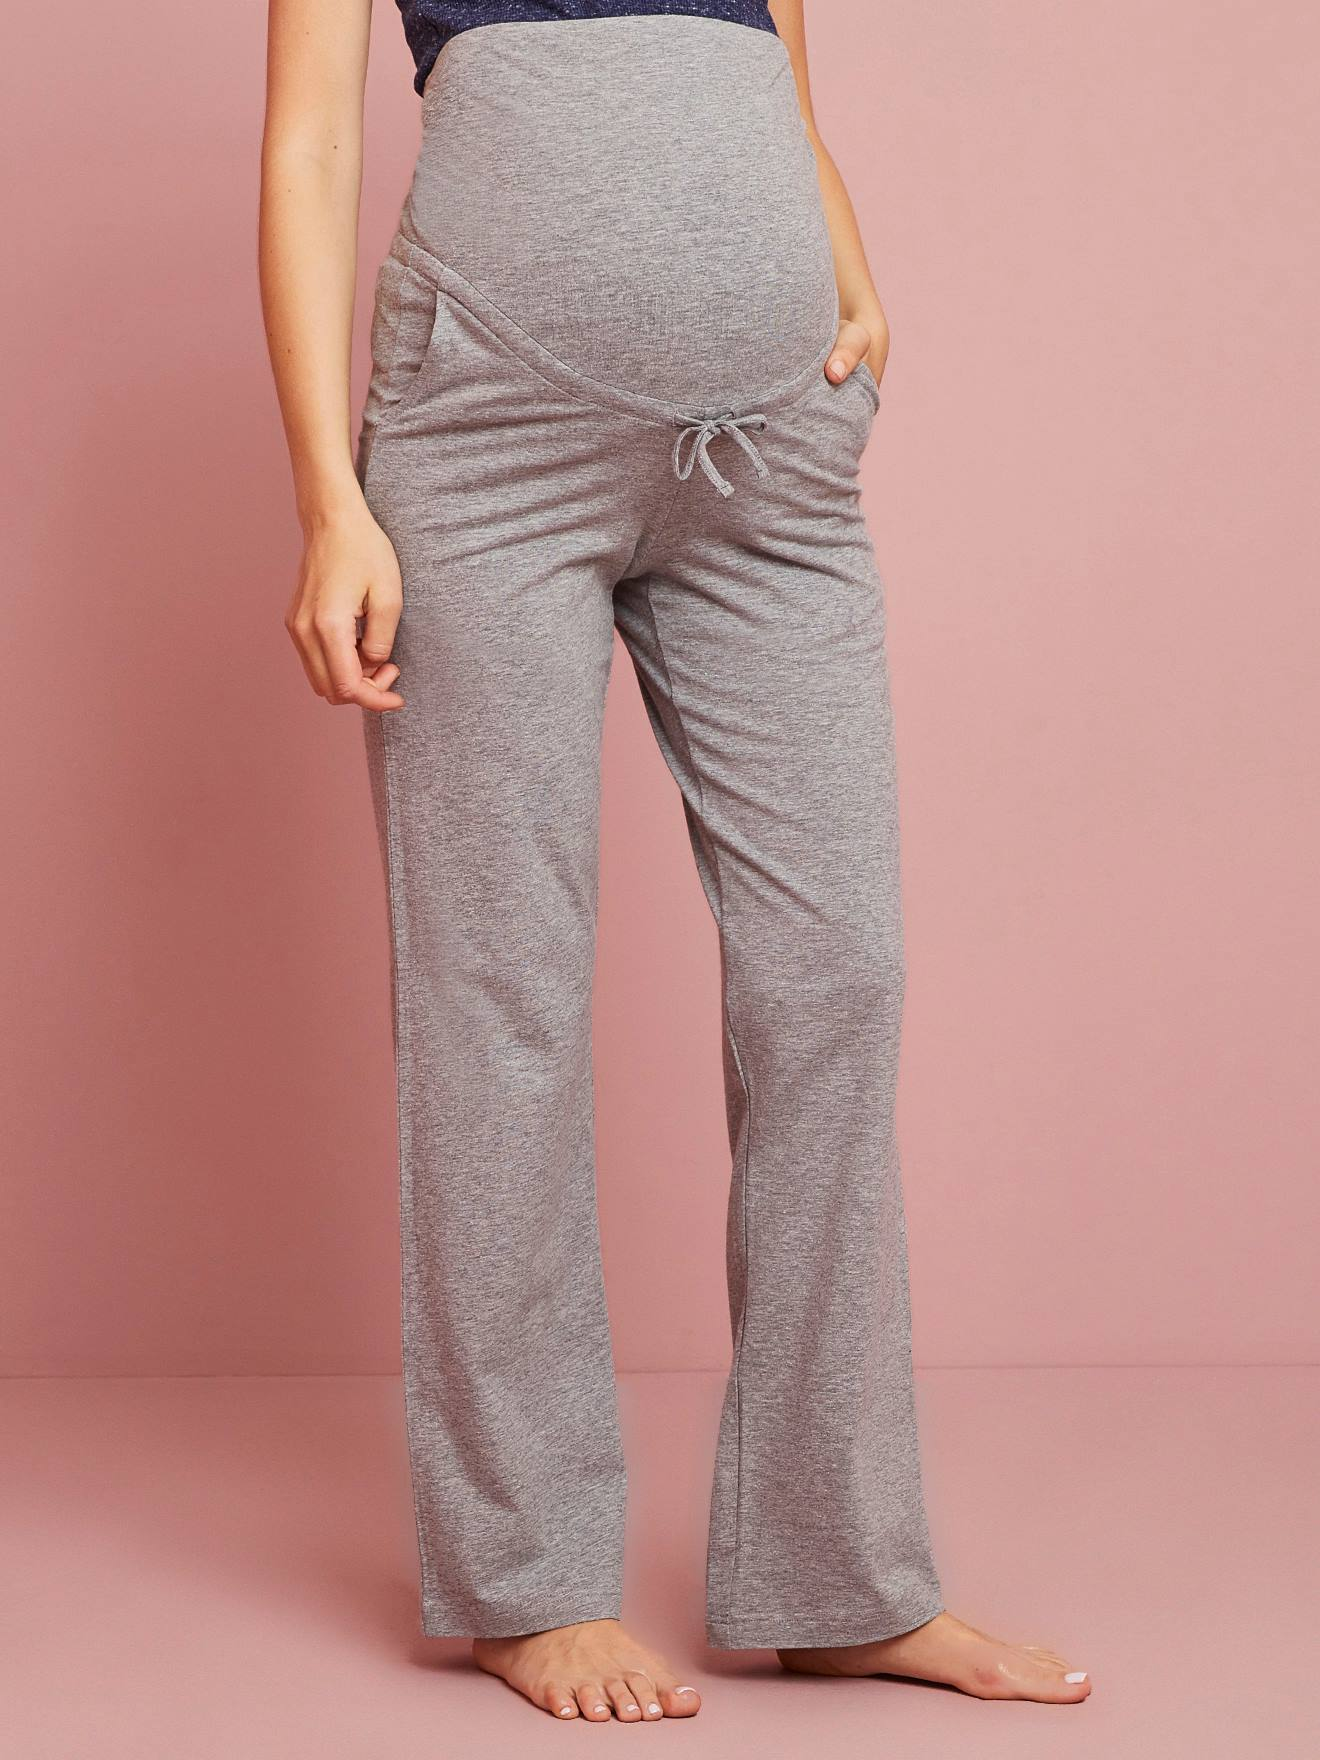 531ca52e93 Before-After Yoga Trousers - grey medium mixed color, Maternity